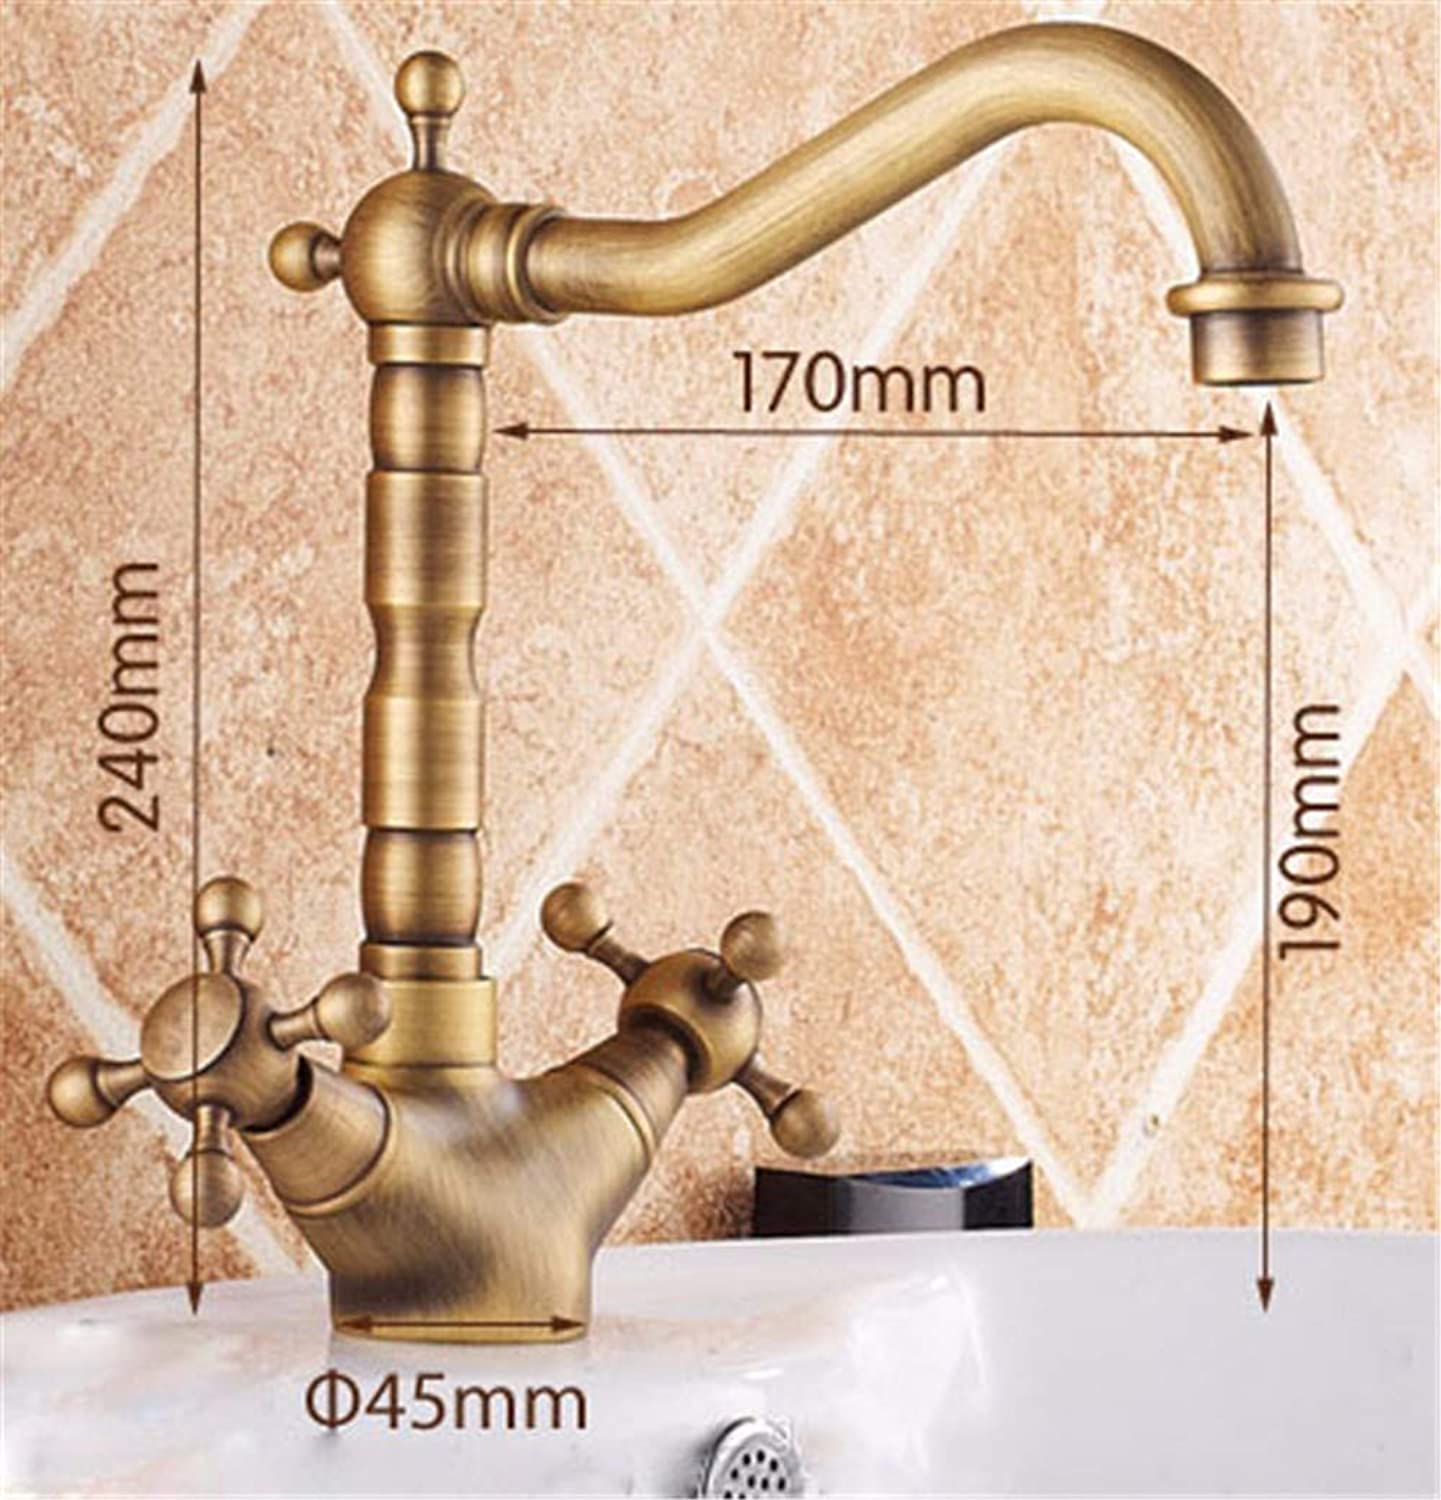 QWL-Faucet Retro copper faucet hot and cold basin single hole single handle, gold Basin Sink Mixer Tap Luxury Bathroom Lever Faucet